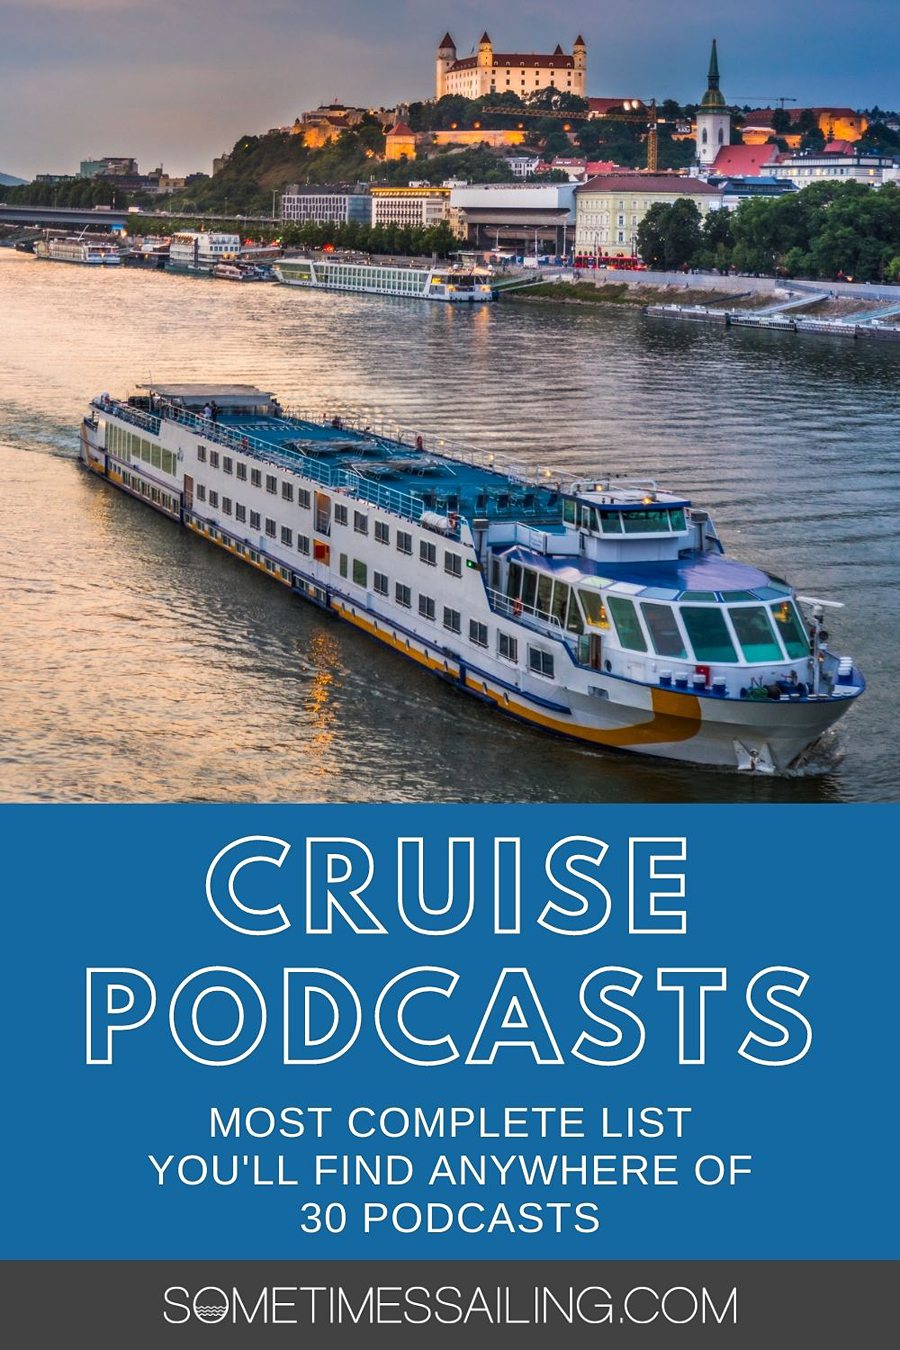 Cruise Podcasts pinterest image with a cruise ship photo in the background